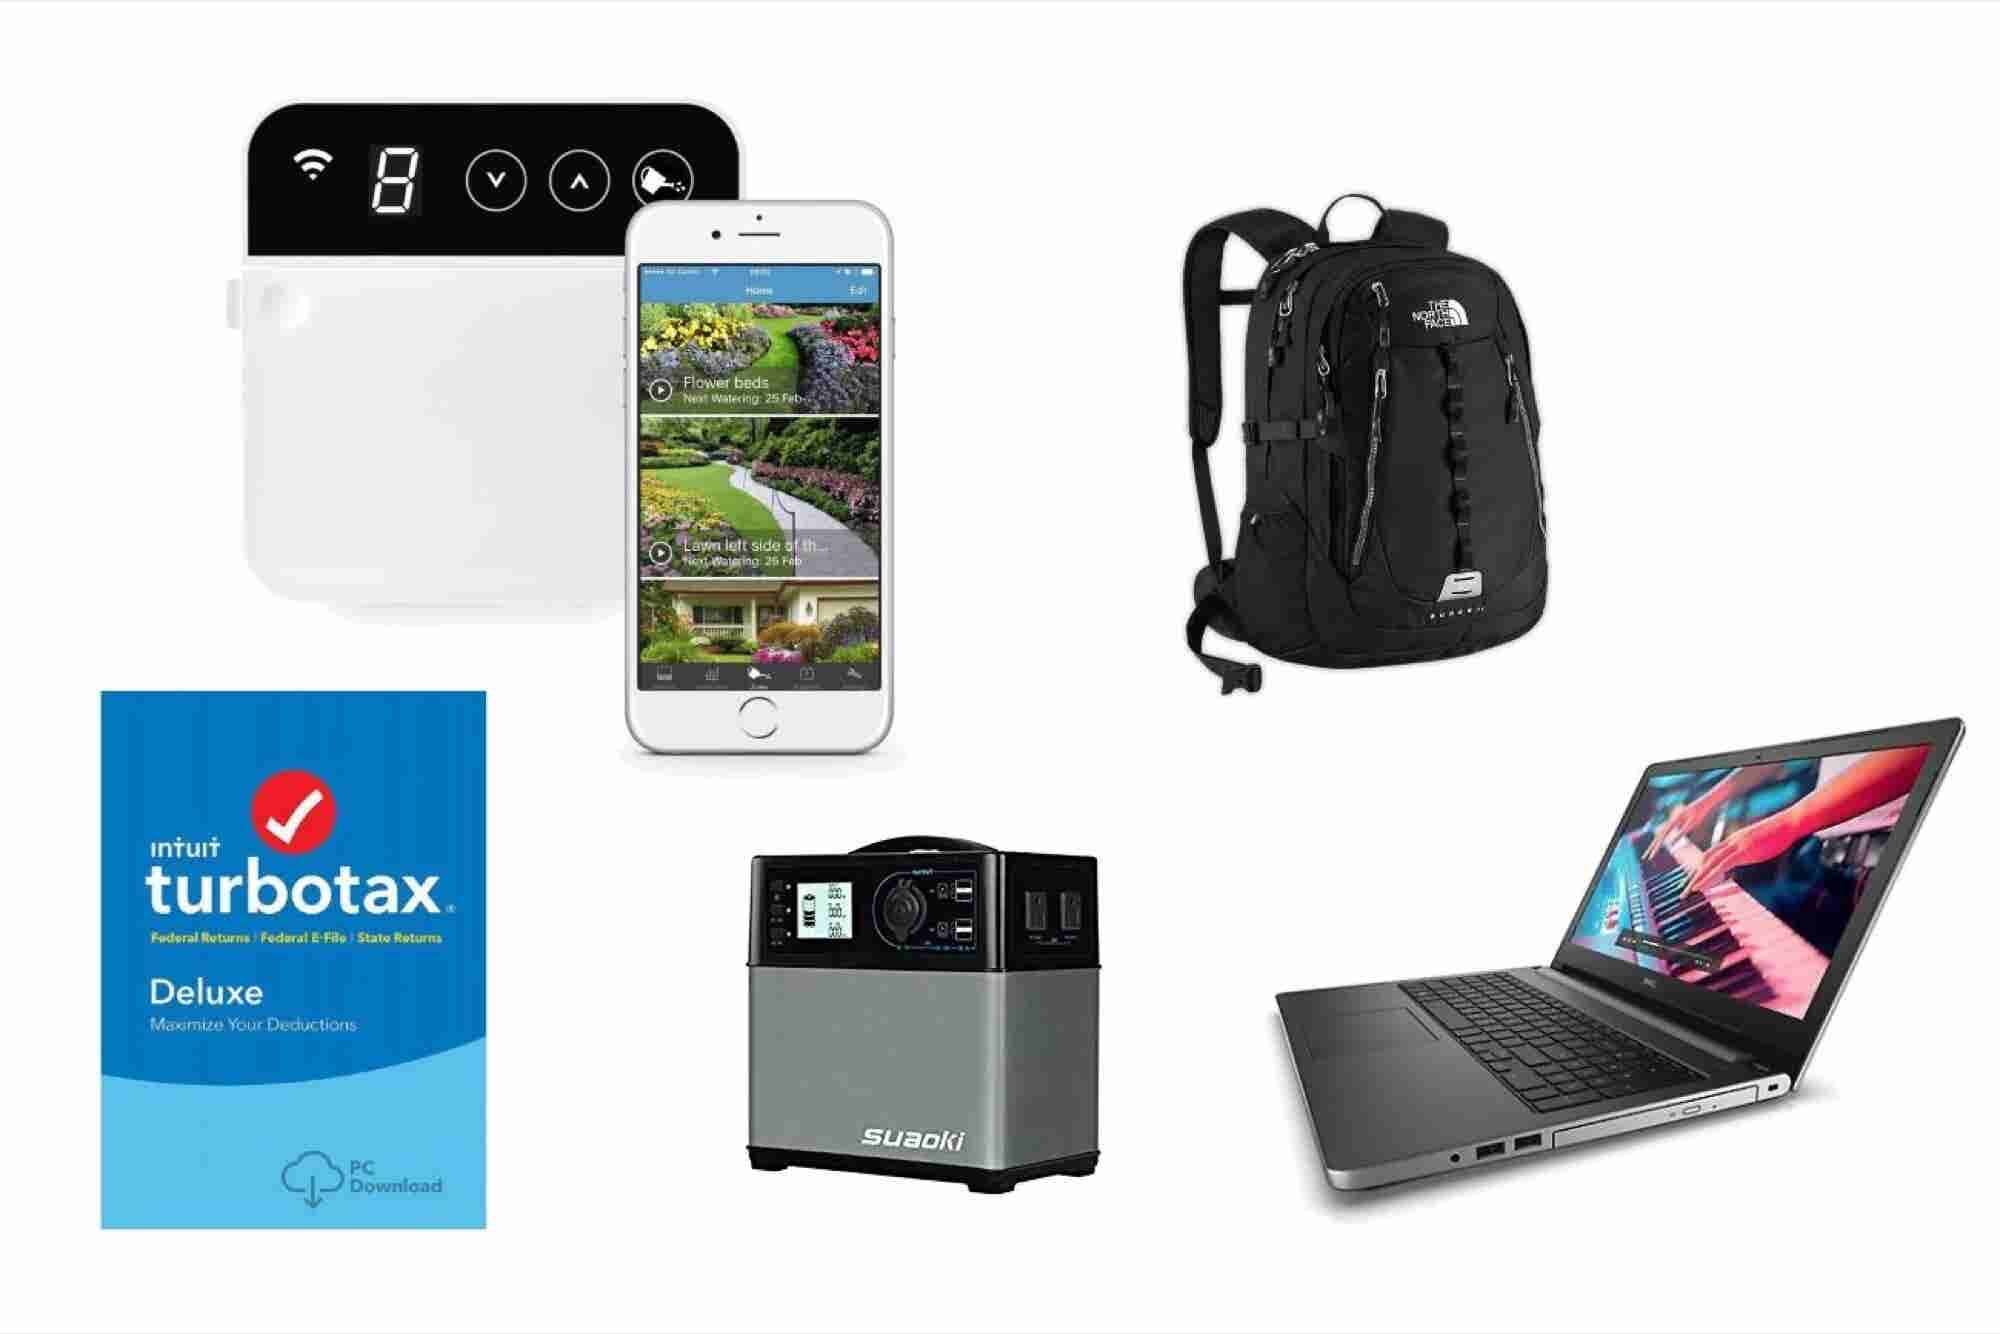 Save Big on TurboTax, Get a Great Deal on an Inspiron 15 Laptop and More